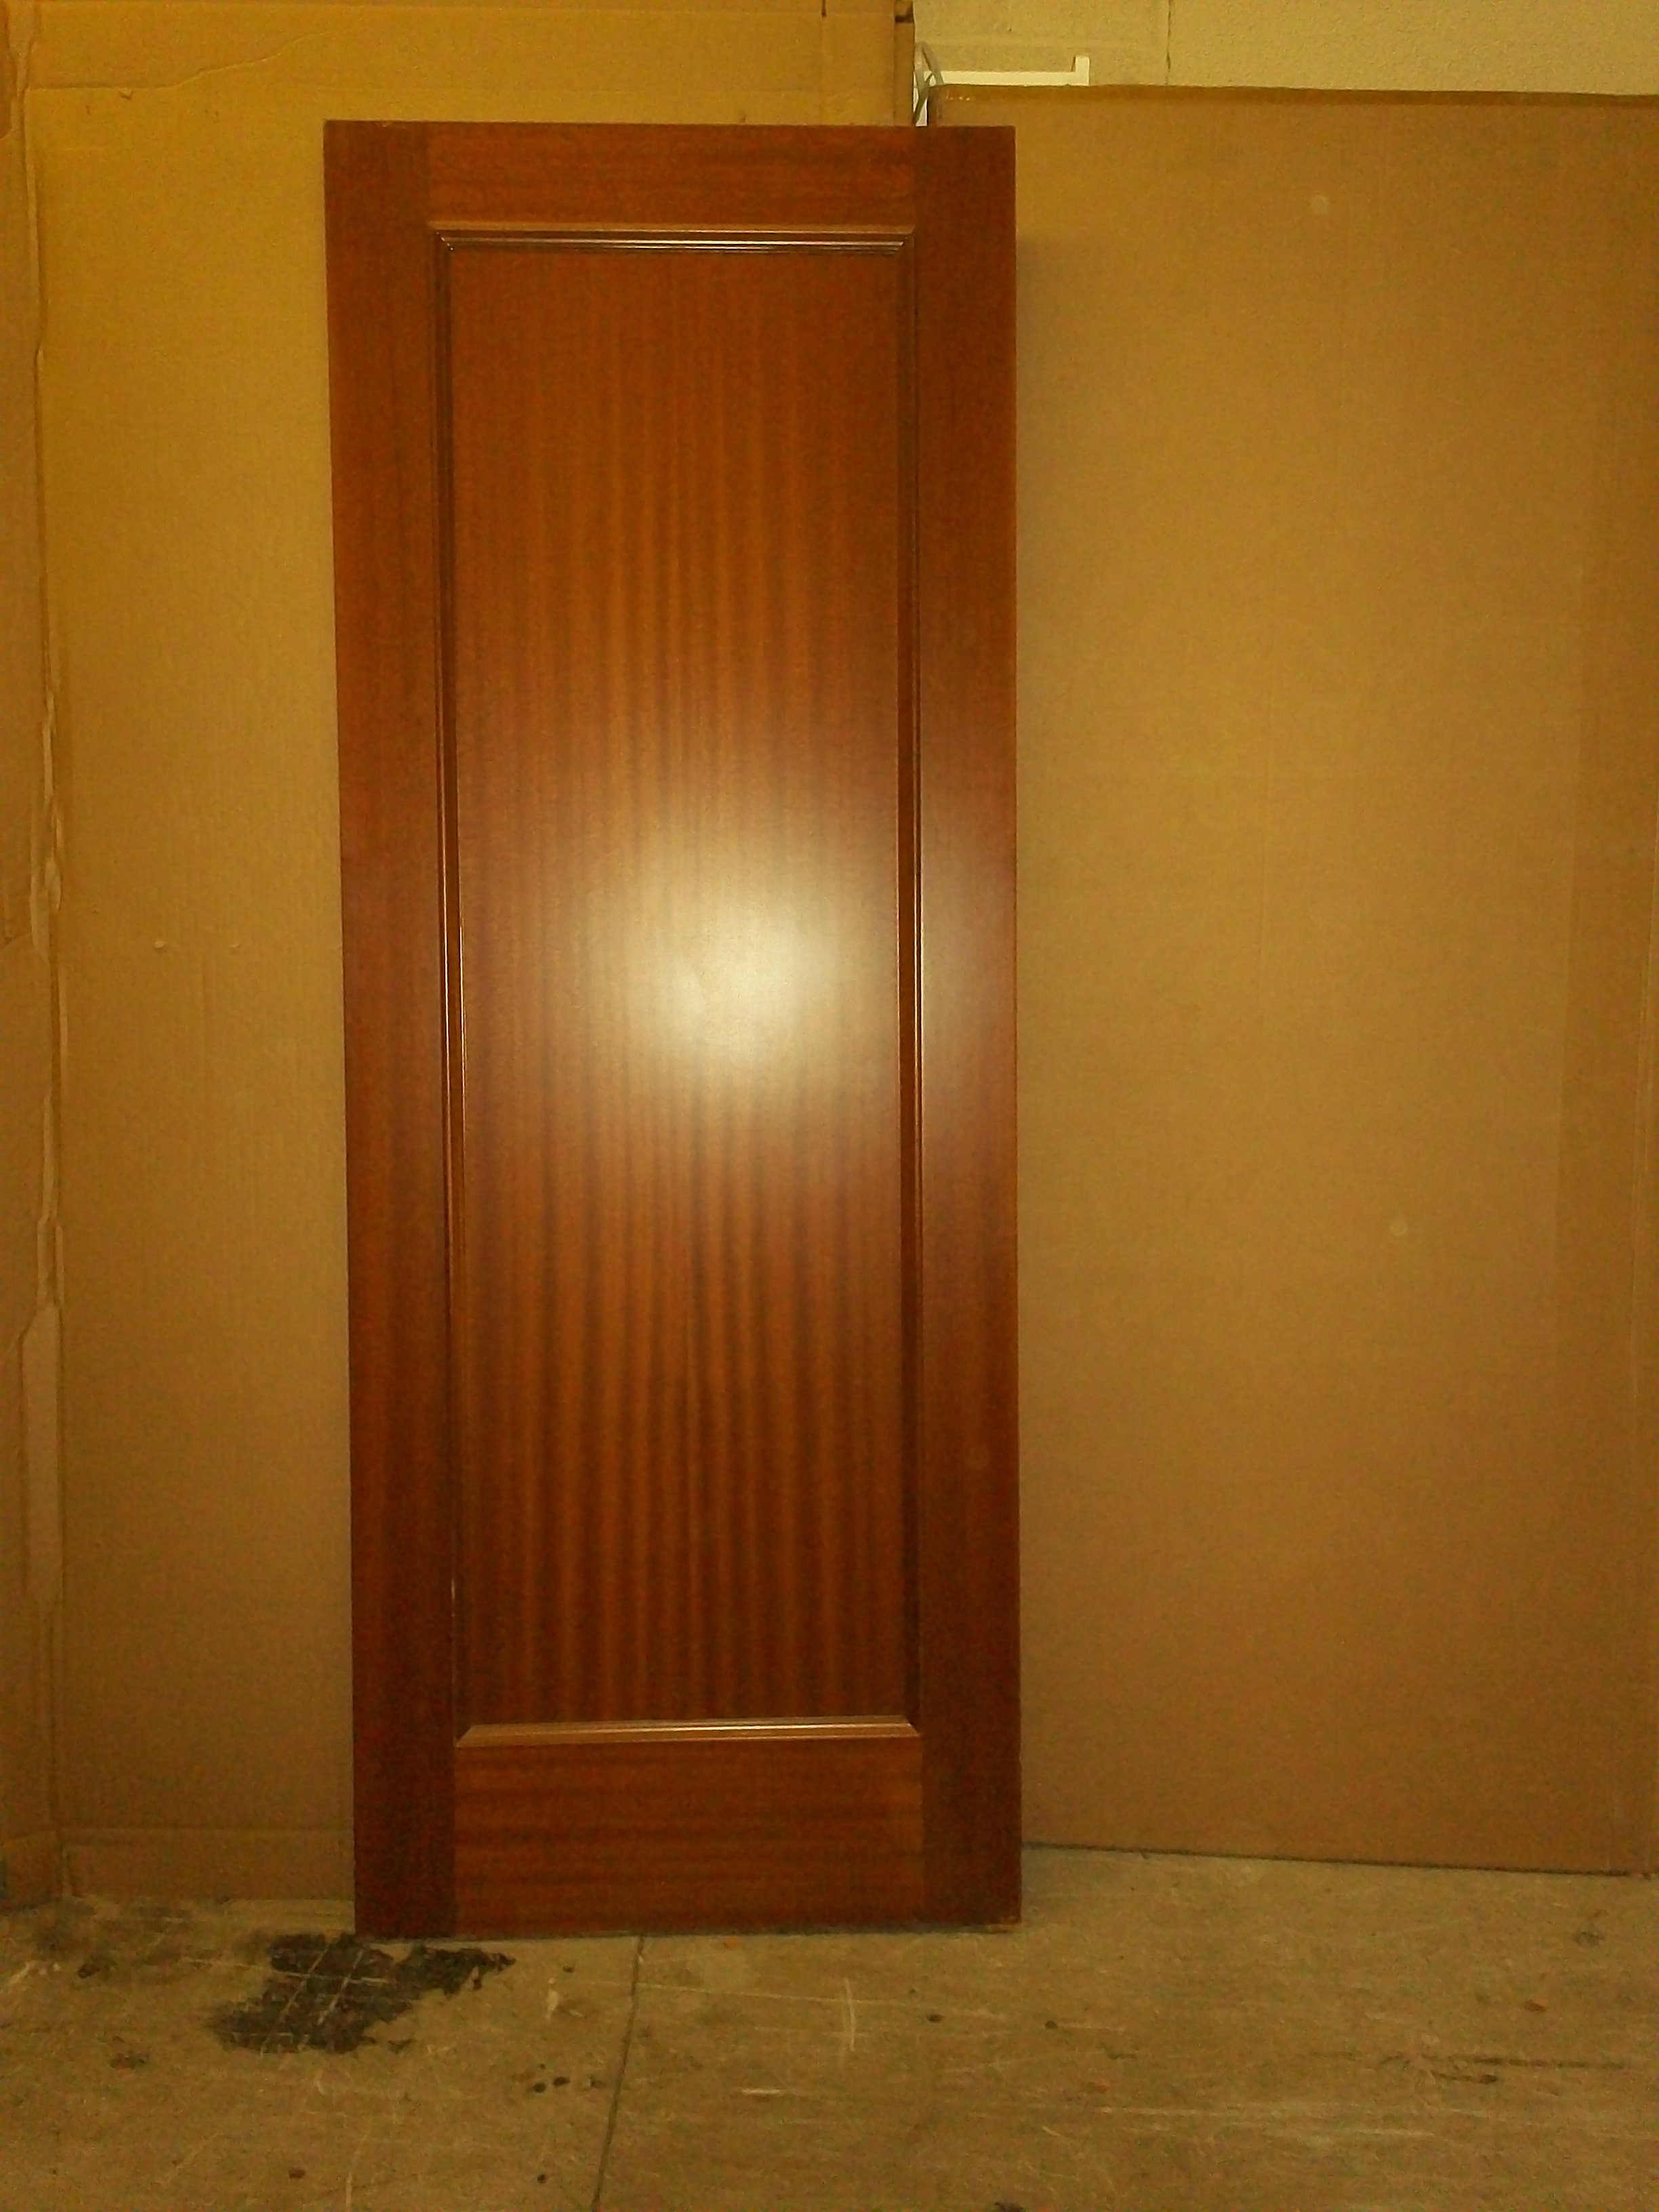 75 99 doors north jersey door - Prefinished mahogany interior doors ...